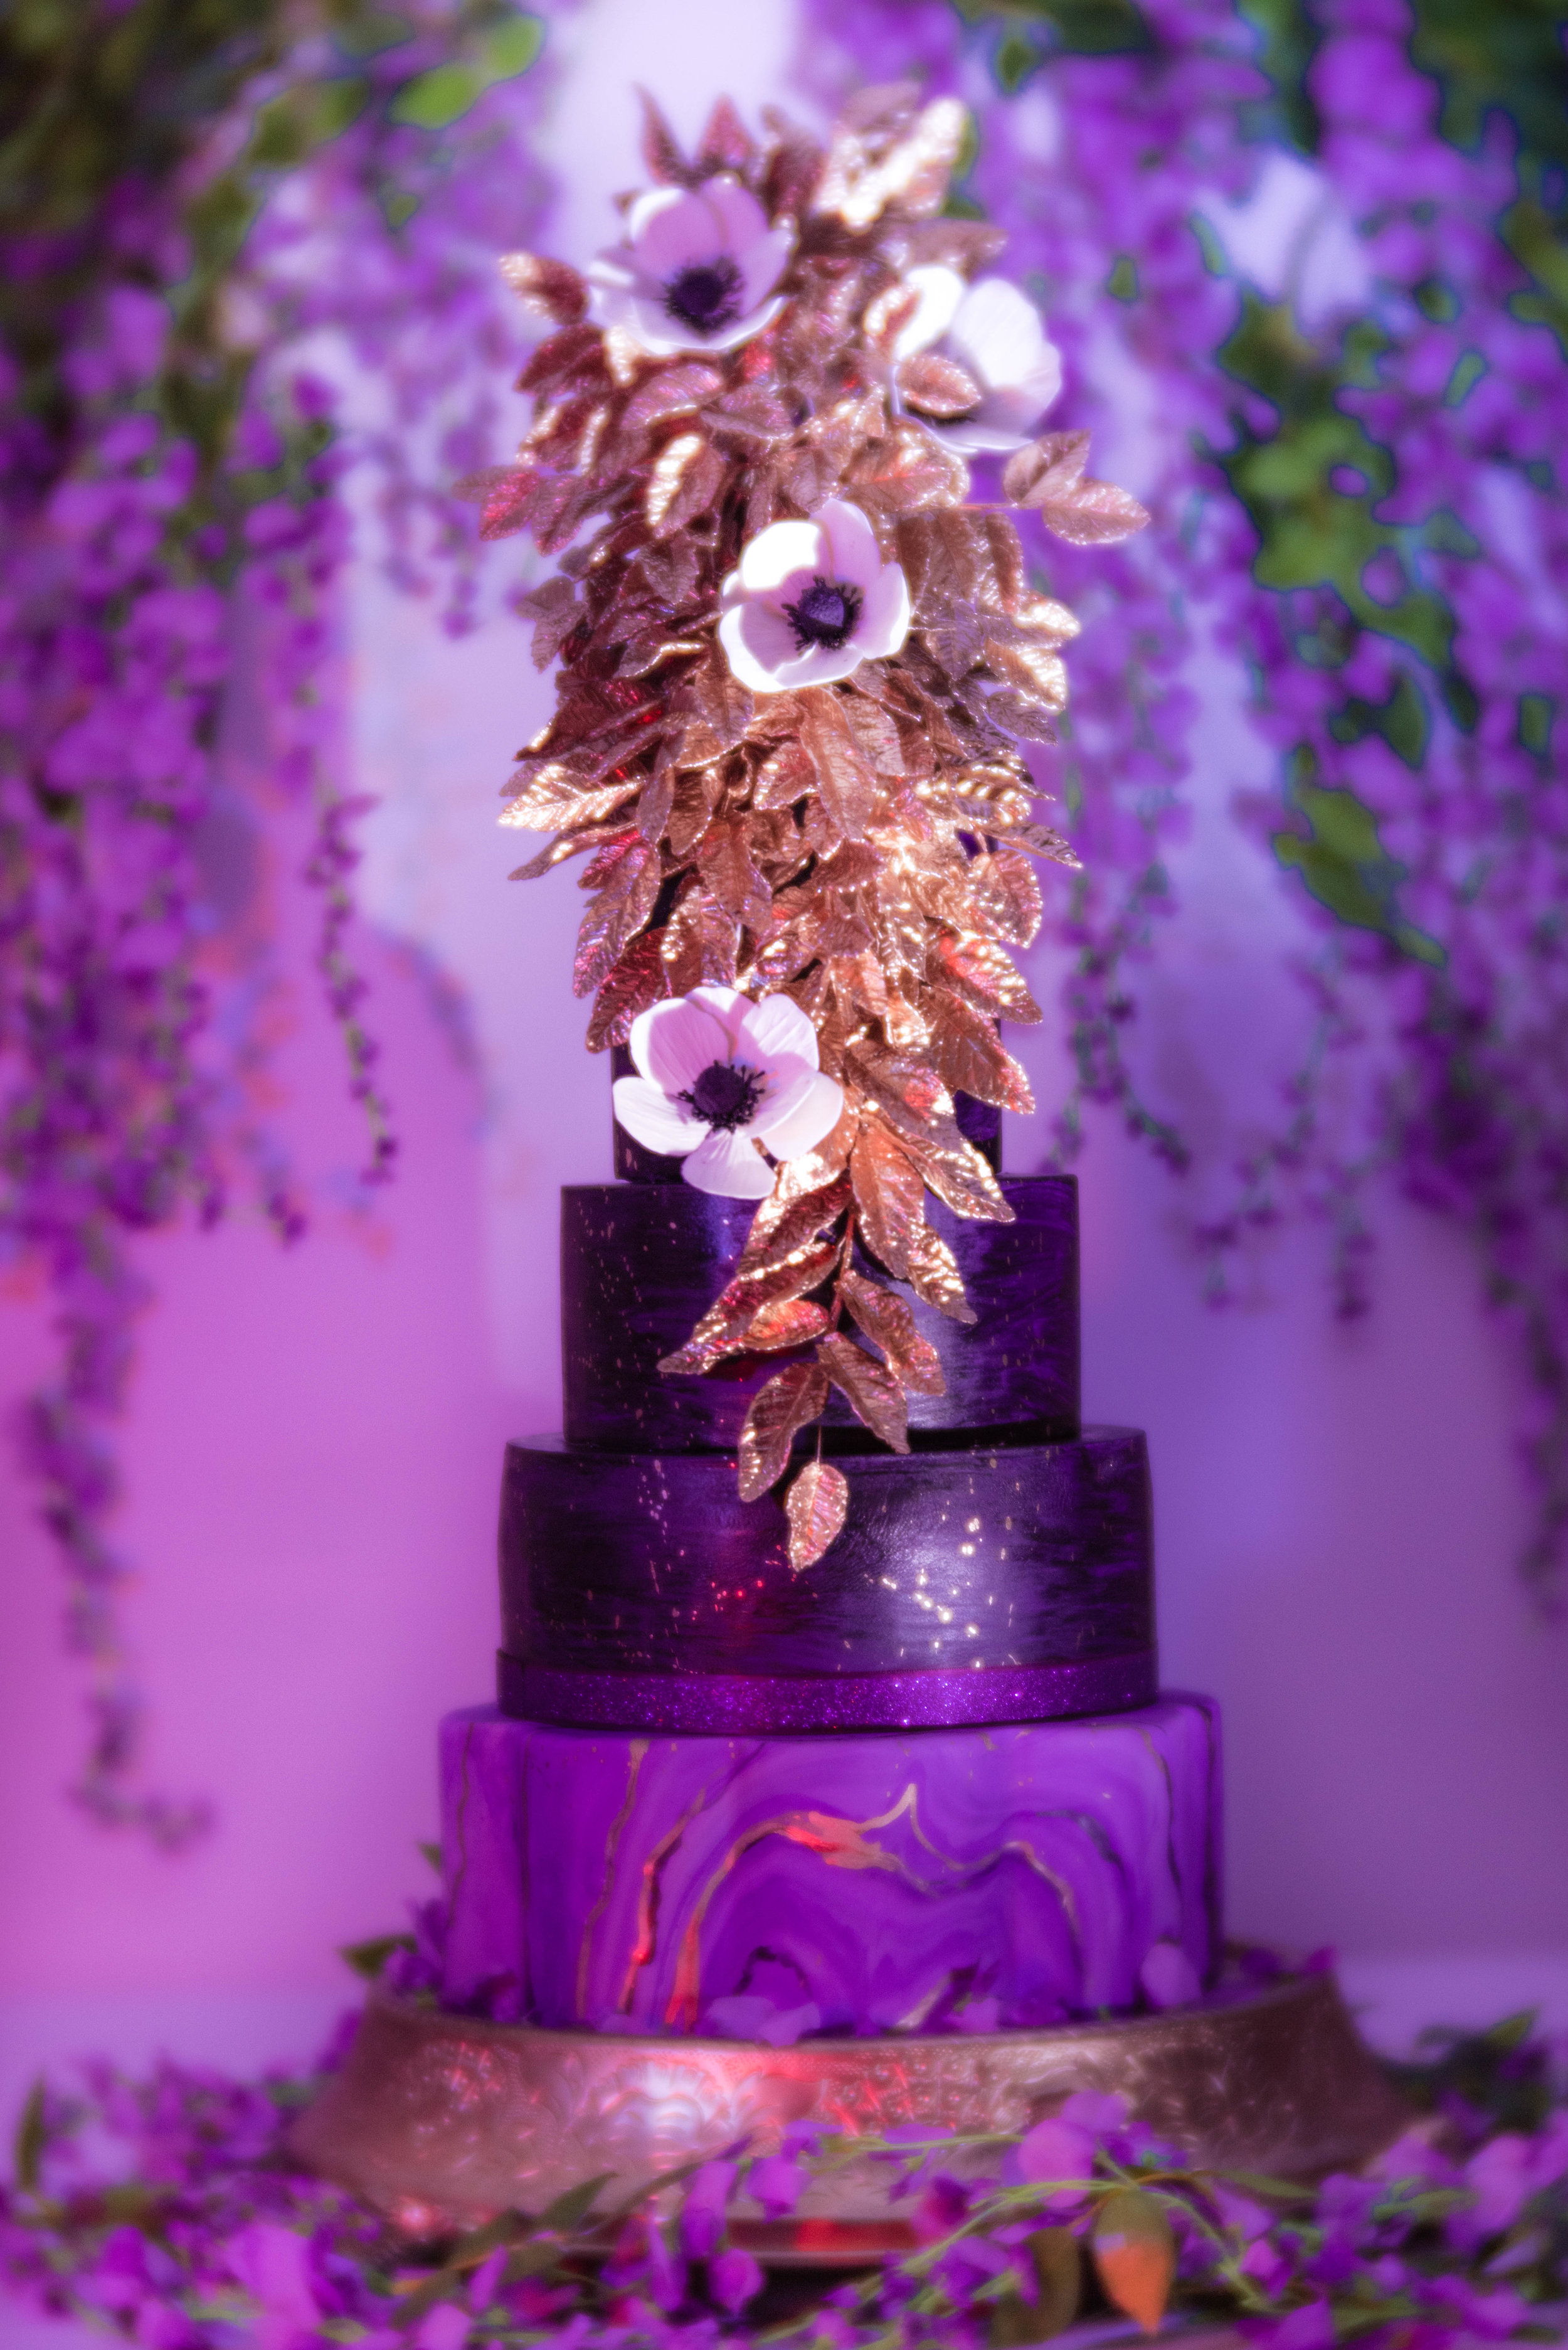 At the Venue... - The cake was bathed in purple light for a very dramatic centerpiece.